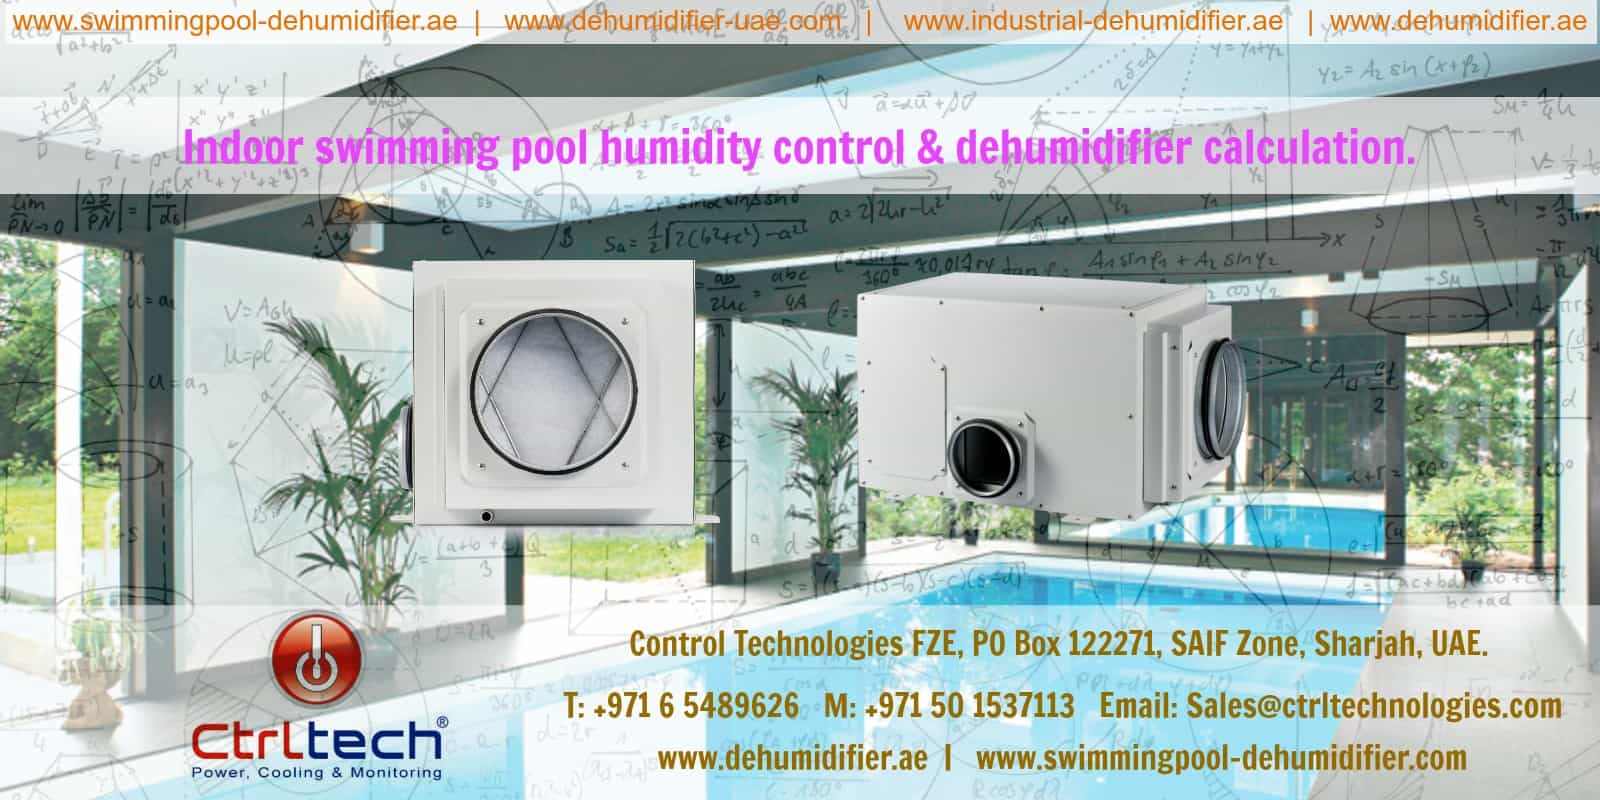 Pool humidity control can be done with help of swimming pool dehumidifiers.